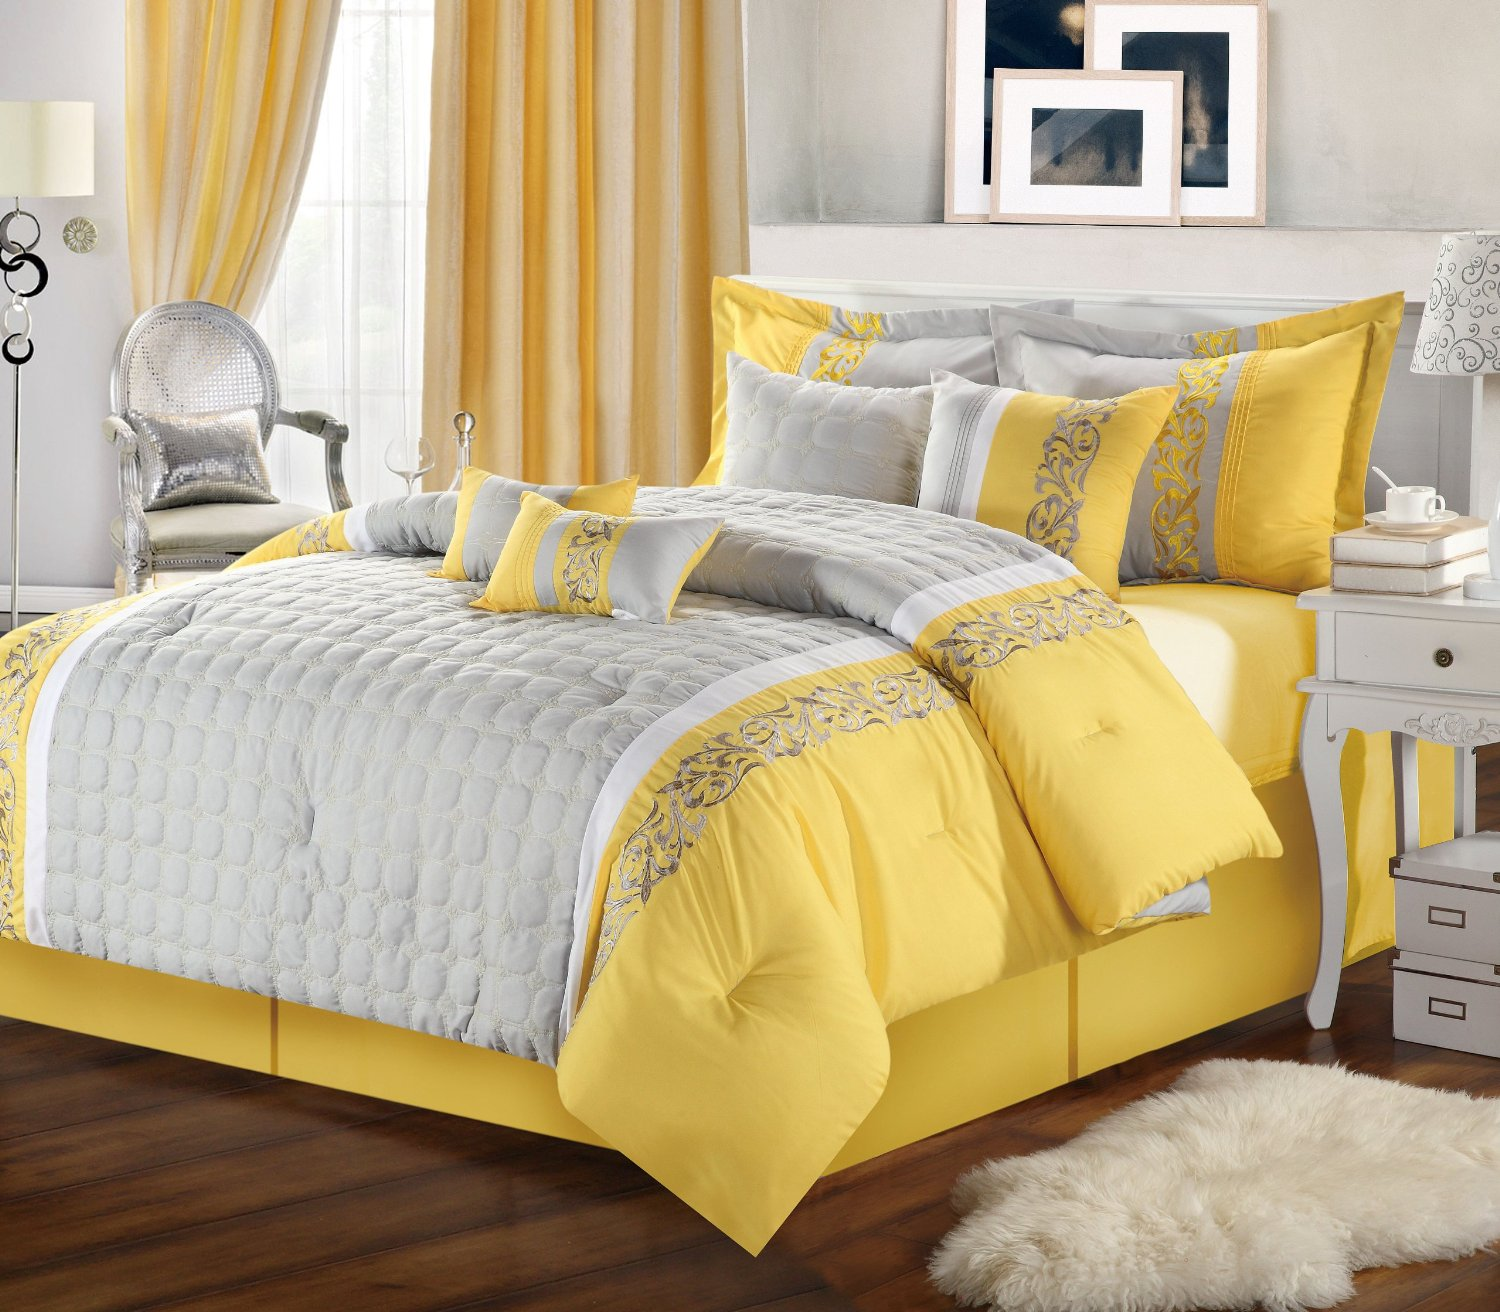 Grand Interior Gray Bedroom Ideas With Yellow Accent also Arm Chair Near Window